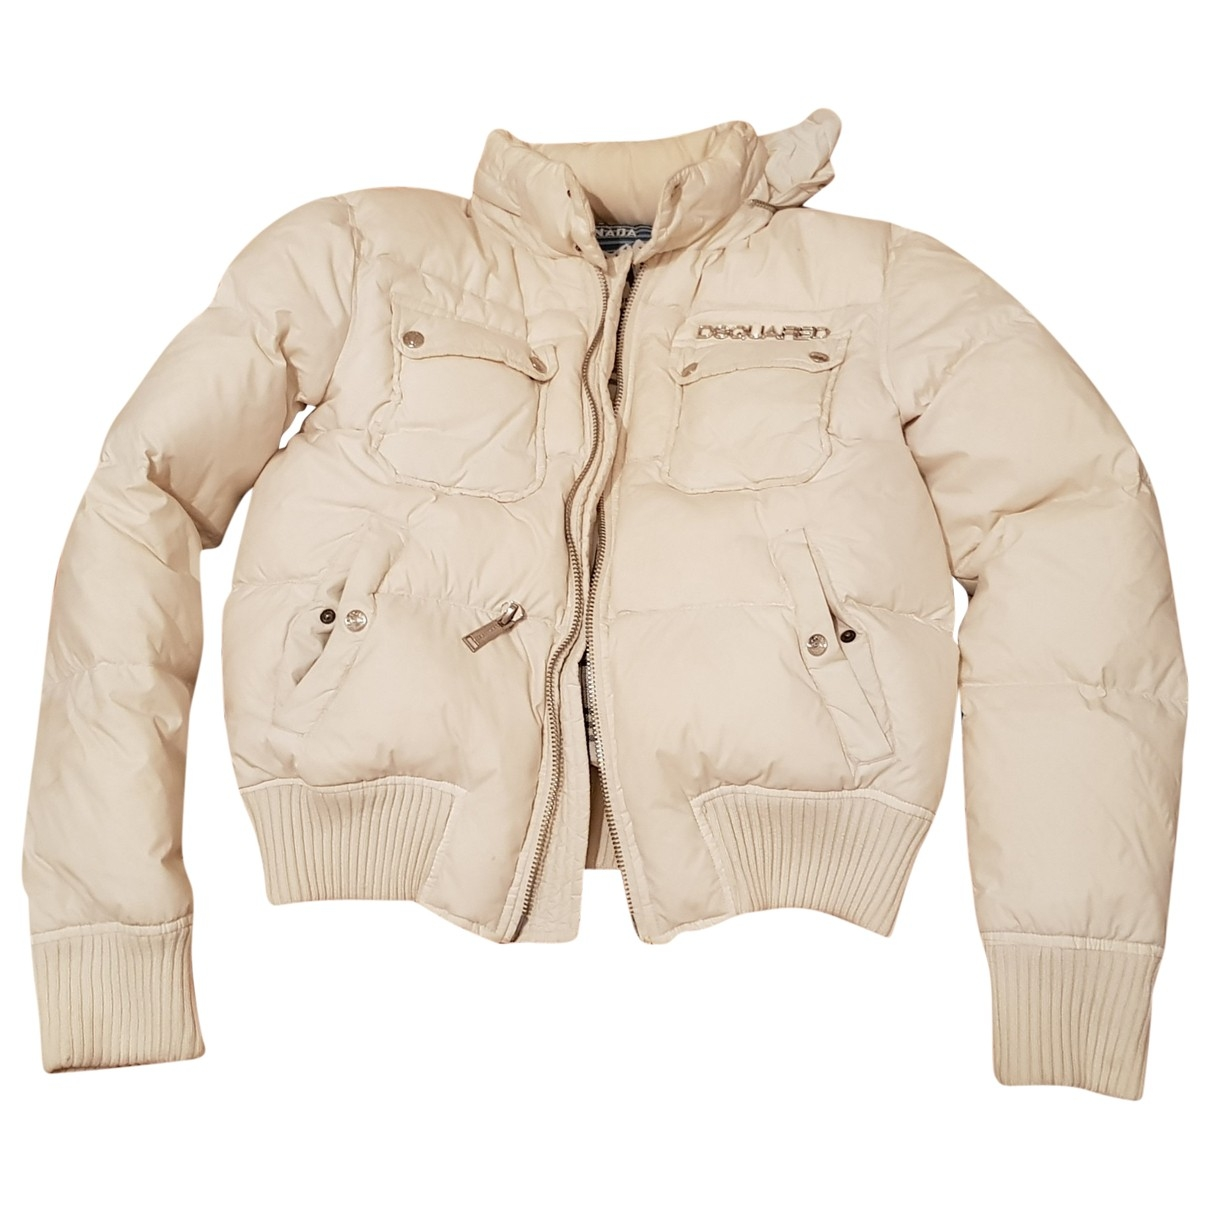 Dsquared2 \N White Leather jacket for Women 50-52 IT